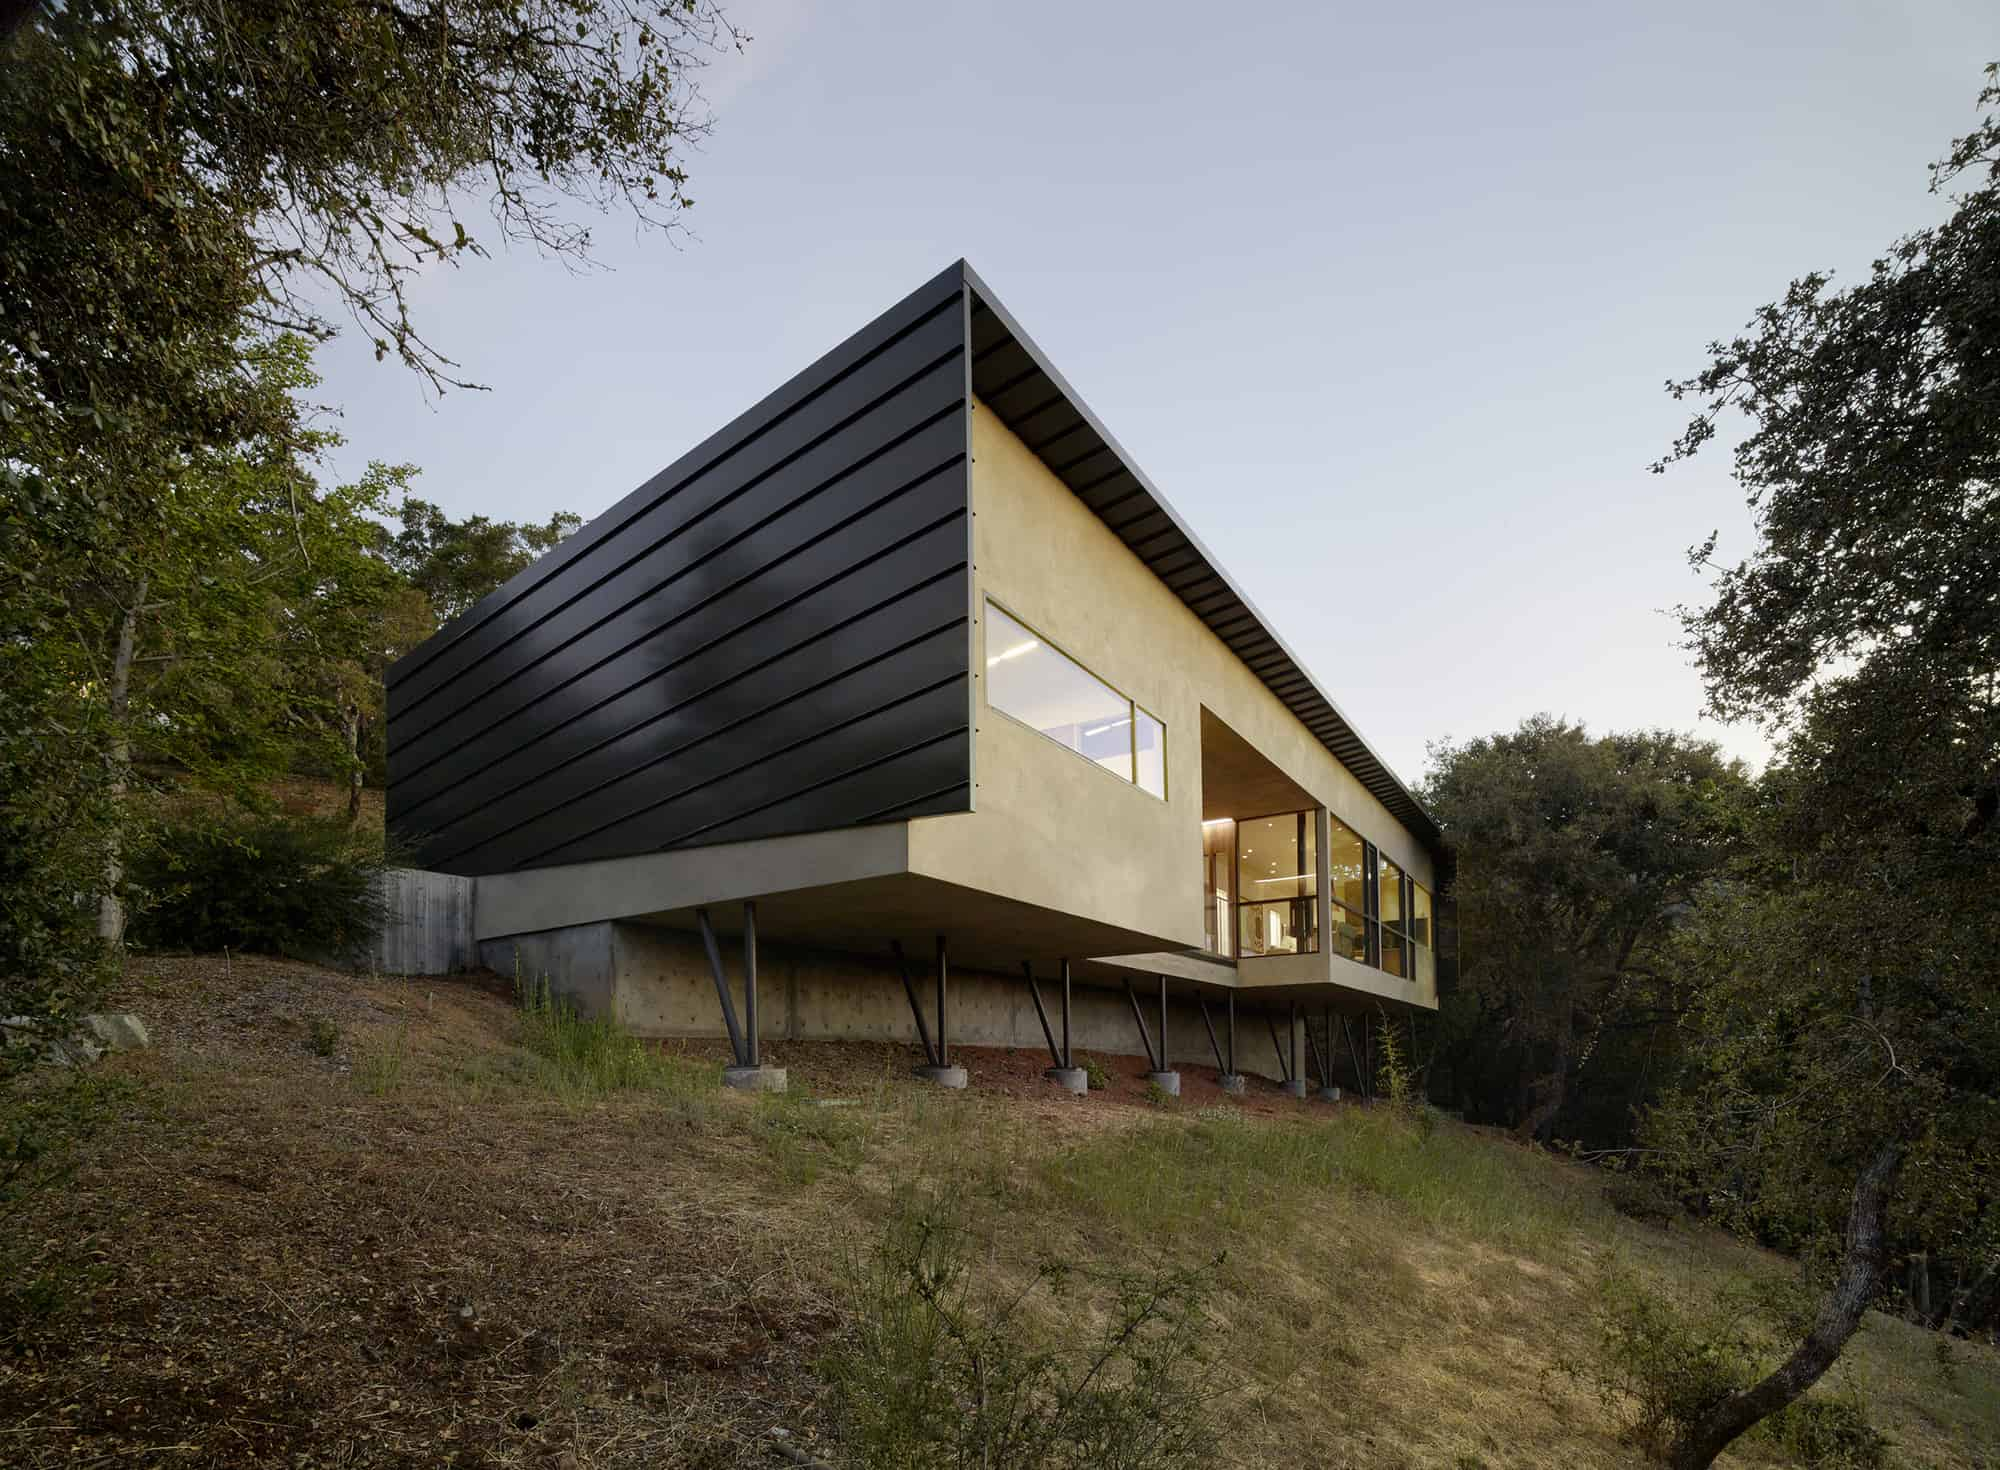 Gorgeous House for Mobility Impaired Cantilevers over Steep Slope